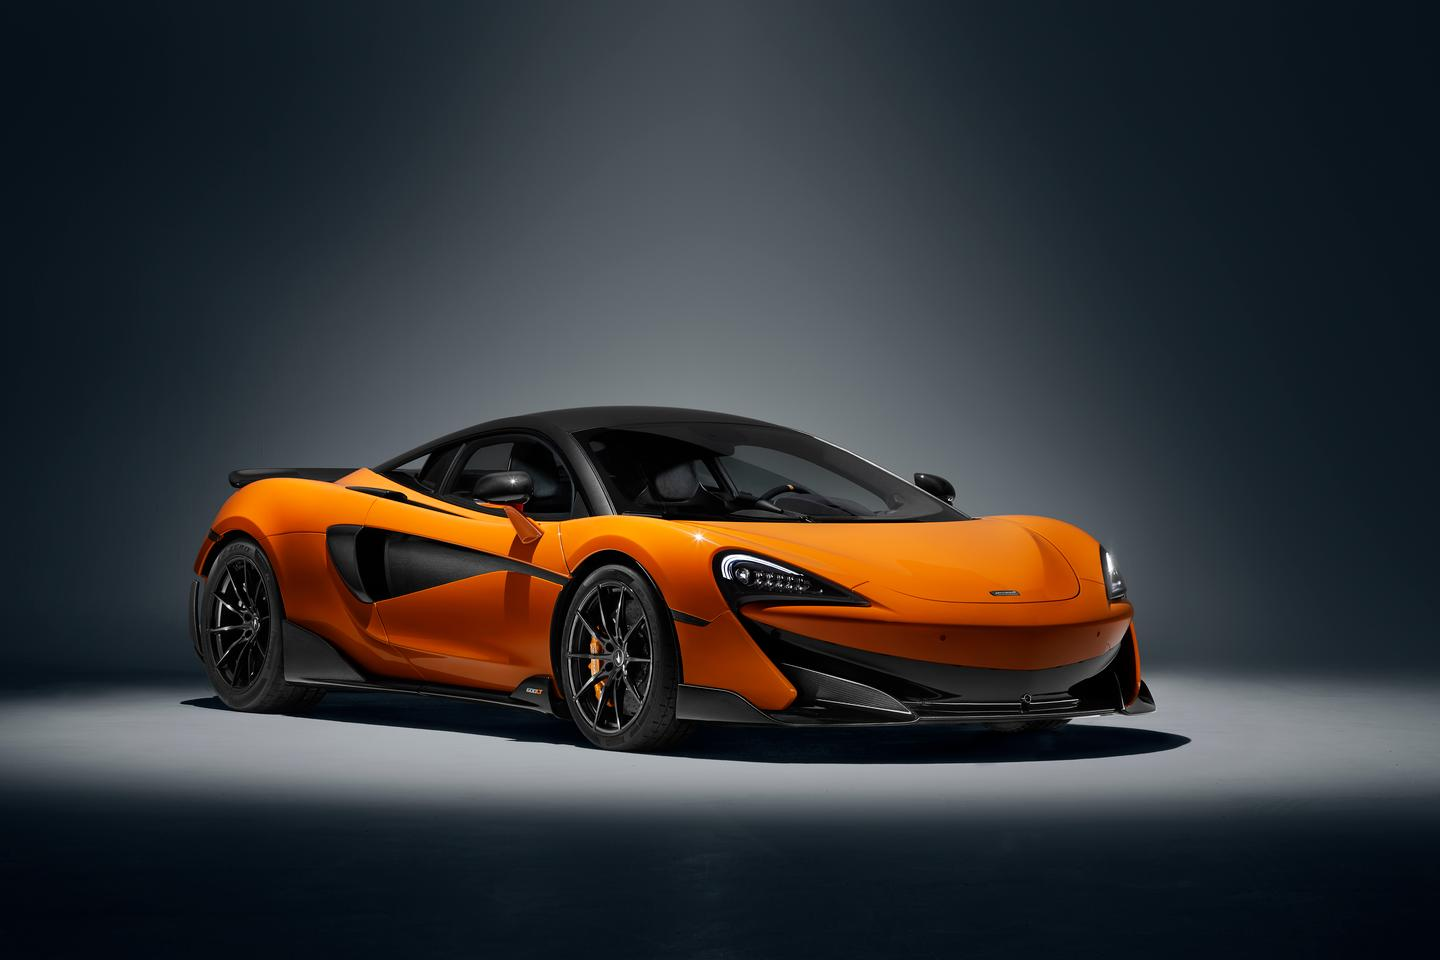 The McLaren 600LT produces 592 bhp (441.5 kW) of umph from its 3.8-liter twin-turbo V8